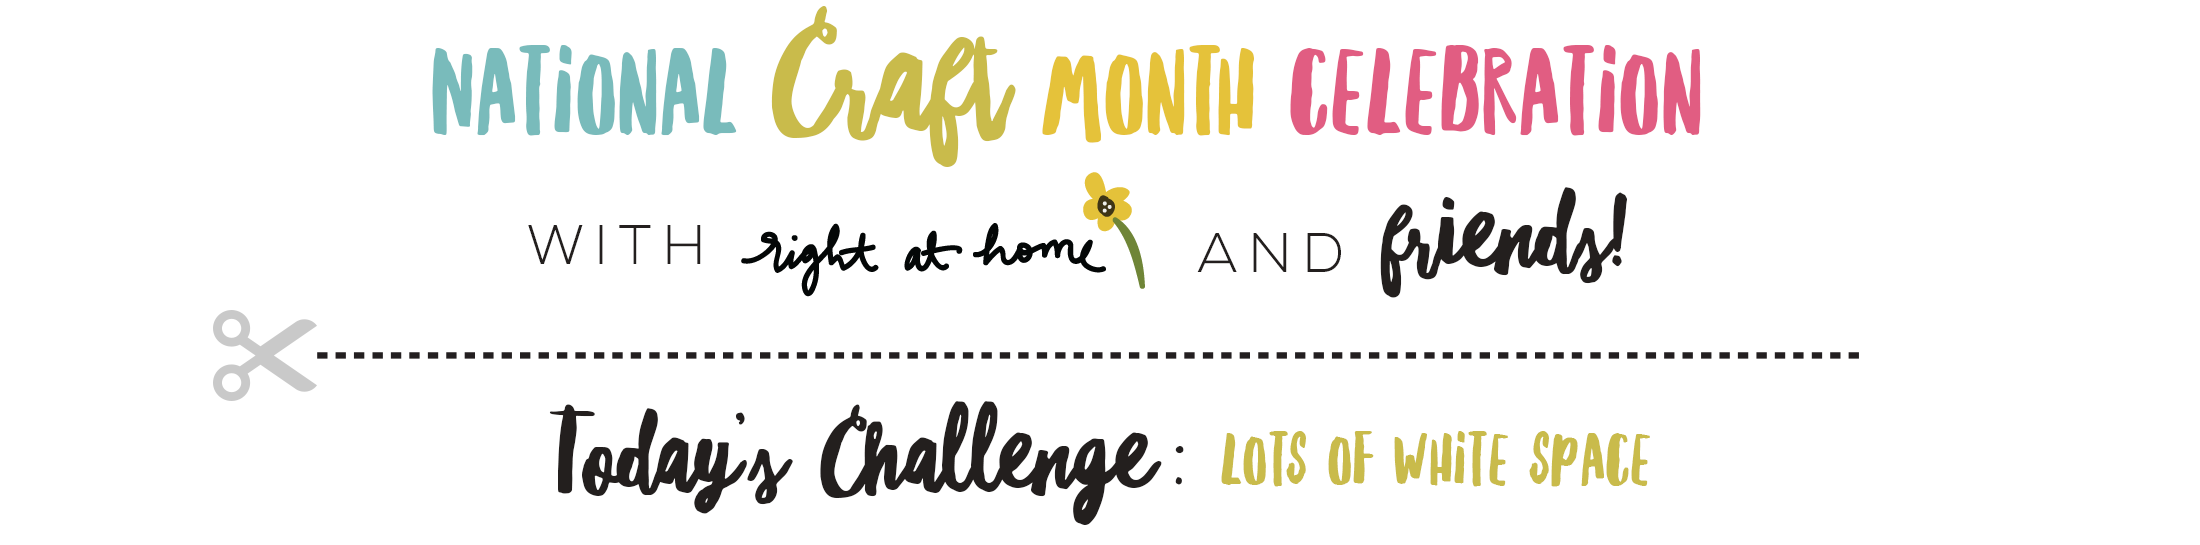 Hello Find the Beauty Clean & Simple Card // National Craft Month with Right at Home + Friends